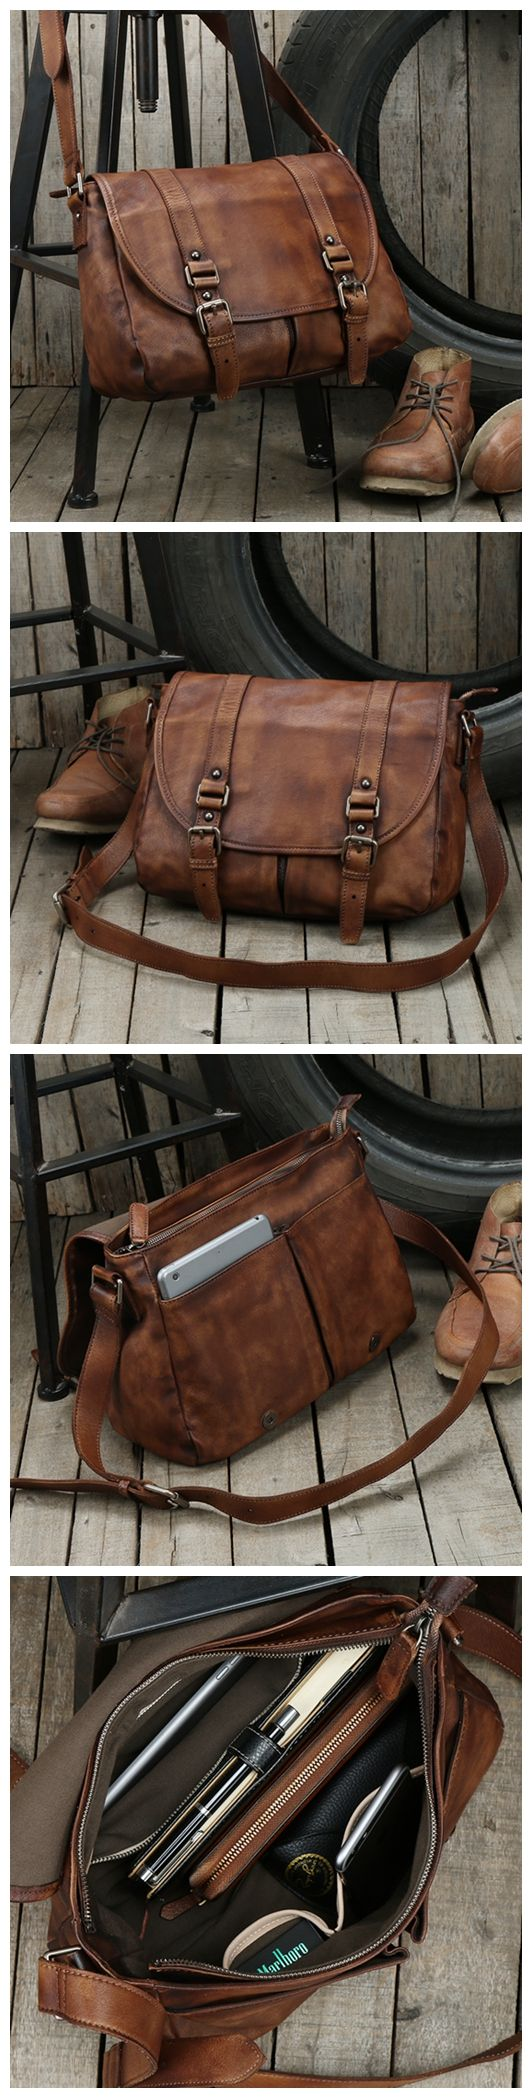 Handmade Men's Messenger Bag Top Grain Leather Travel Bag Crossbody Bag Leather Satchel 9042